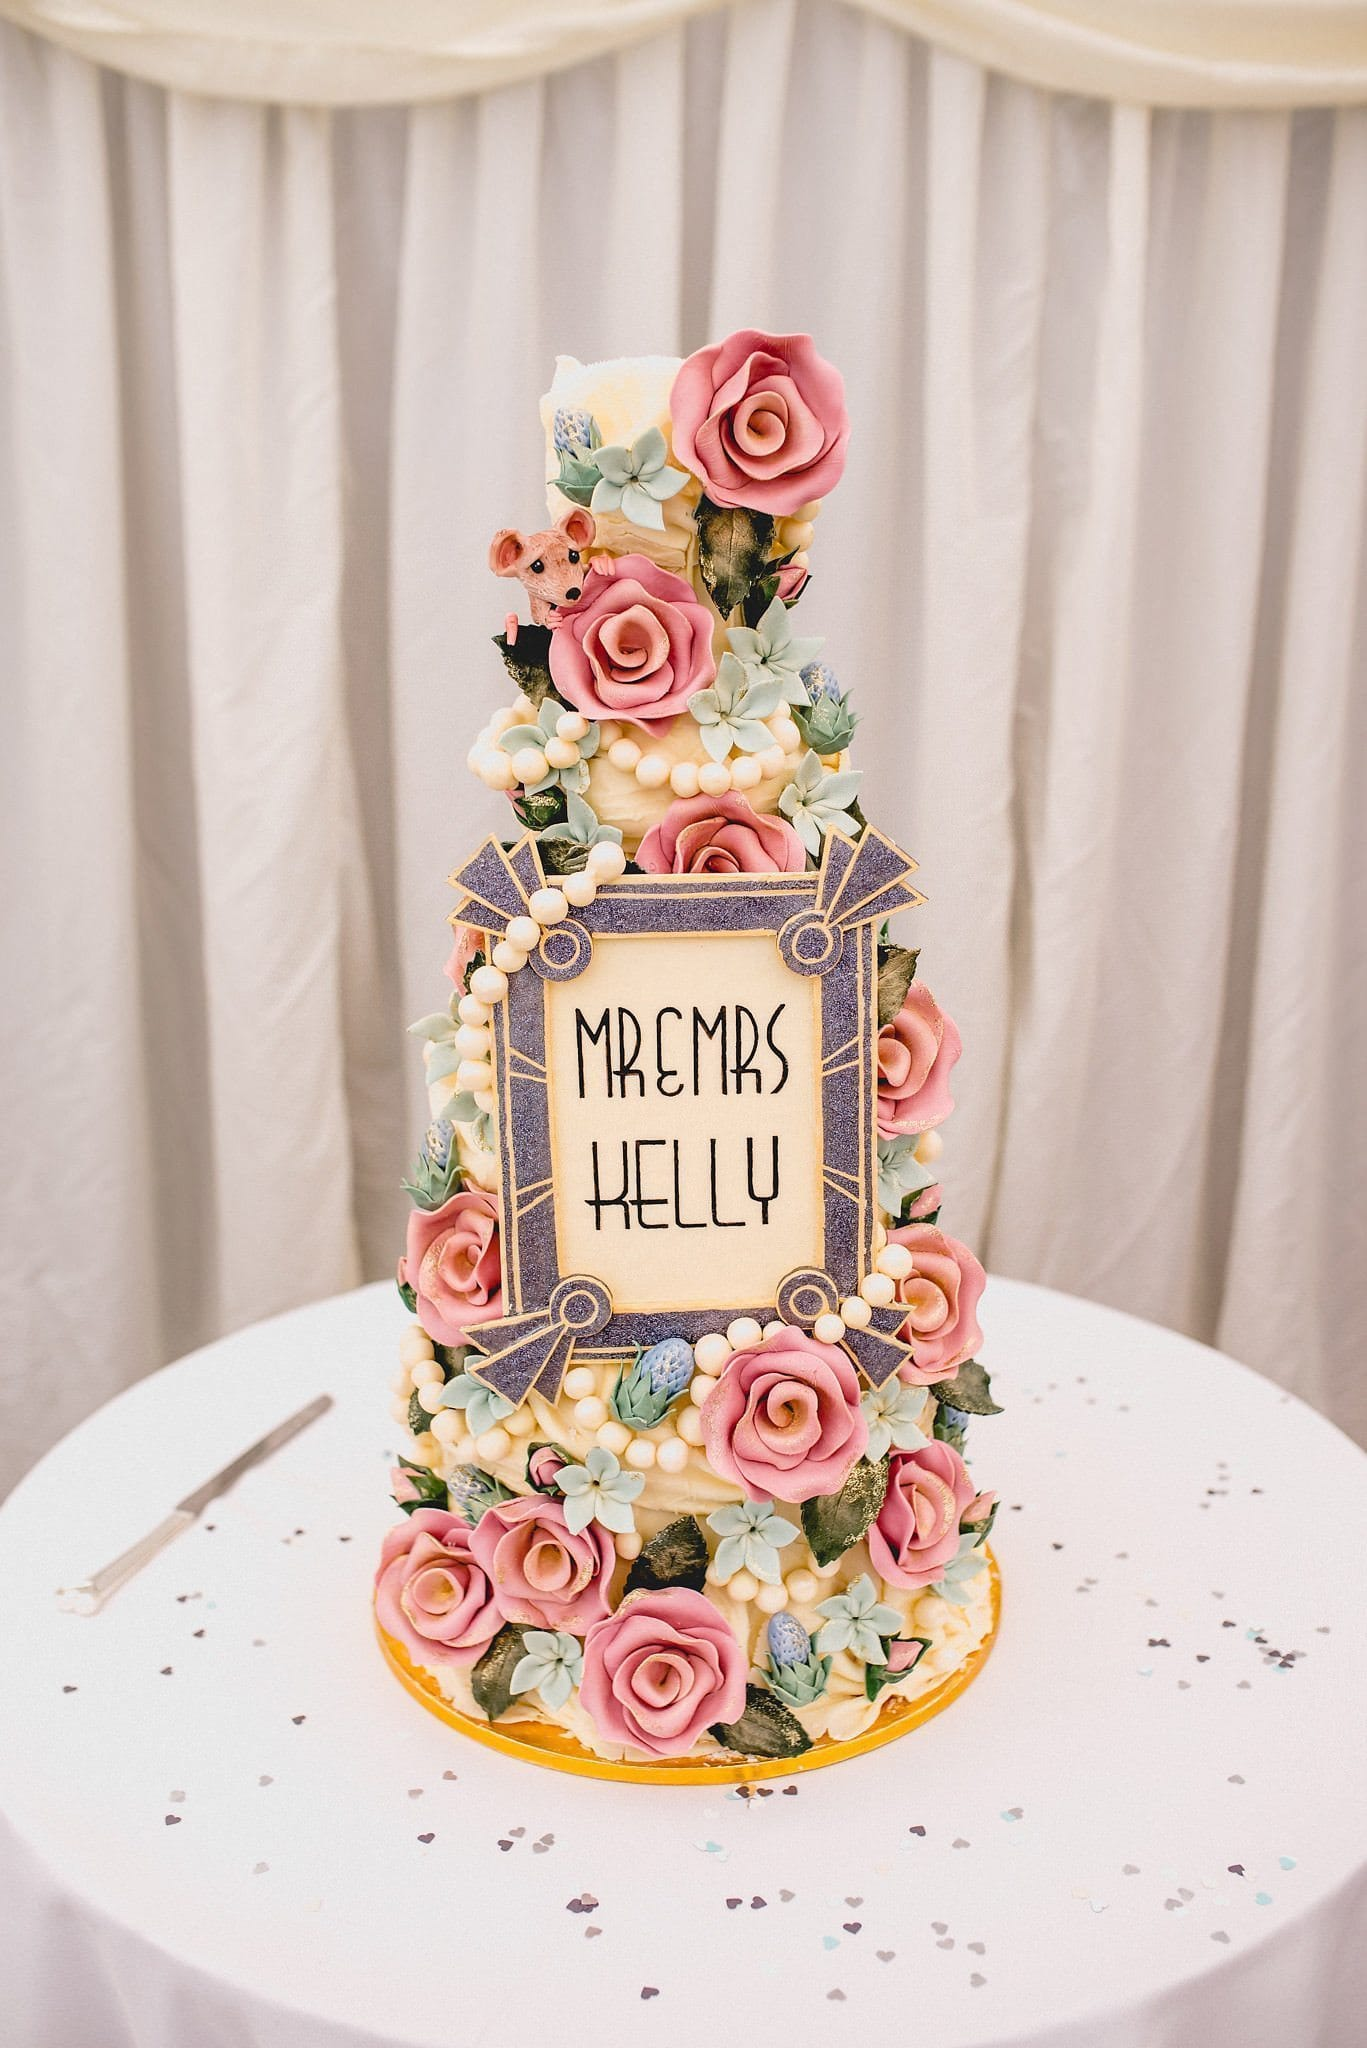 Start Wedding Planning | Close up of an ornate wedding cake including roses, pearls and a chocolate mouse.